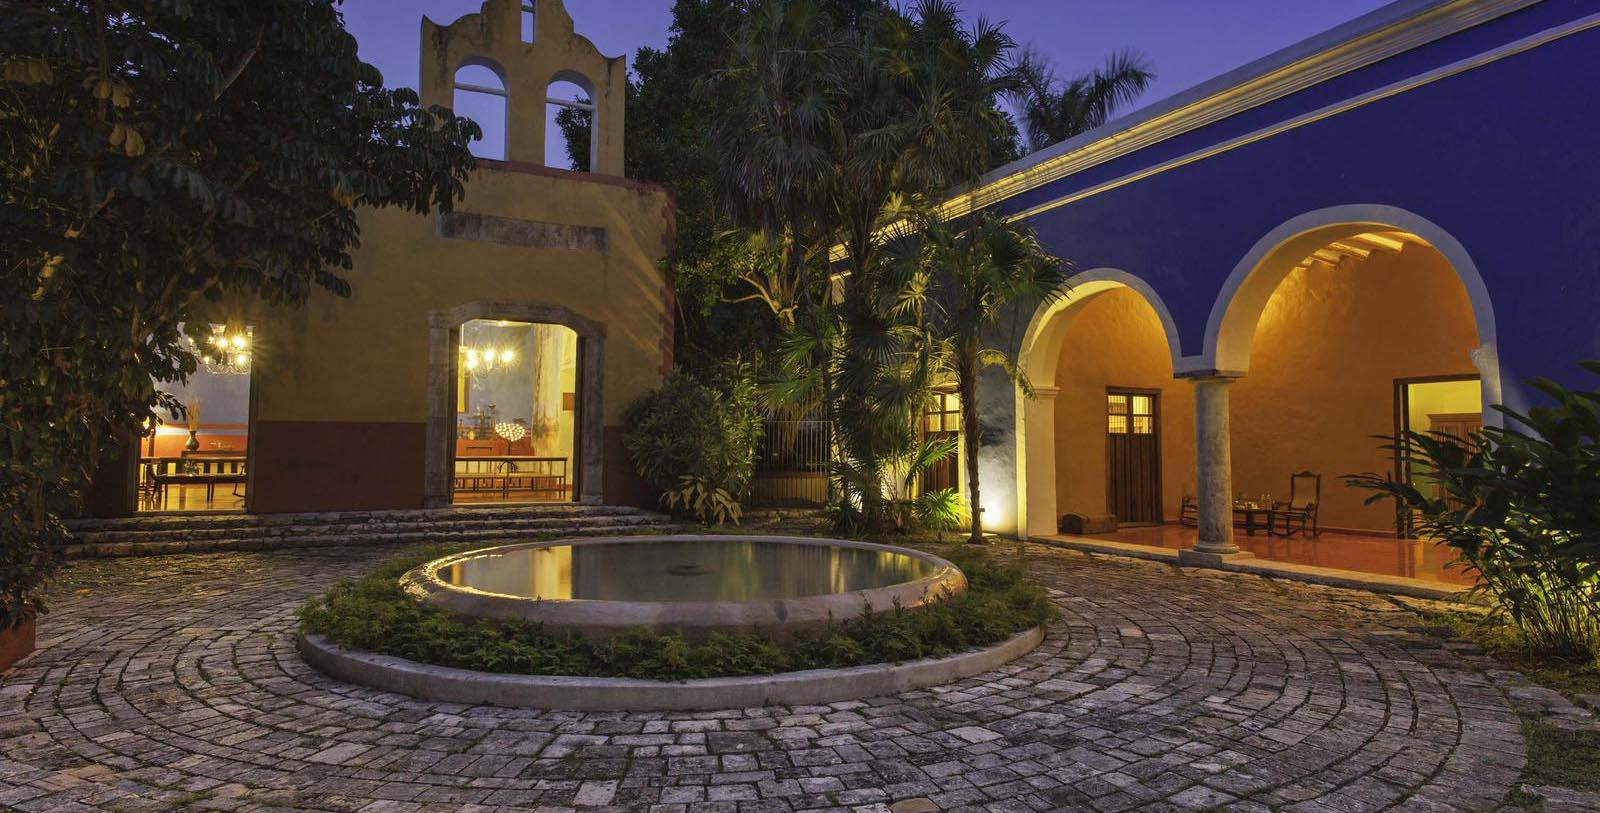 Image of Exterior Courtyard, Hacienda San Jose, A Luxury Collection Hotel, Tixkokob, Mexico, 1800, Member of Historic Hotels Worldwide, Special Offers, Discounted Rates, Families, Romantic Escape, Honeymoons, Anniversaries, Reunions